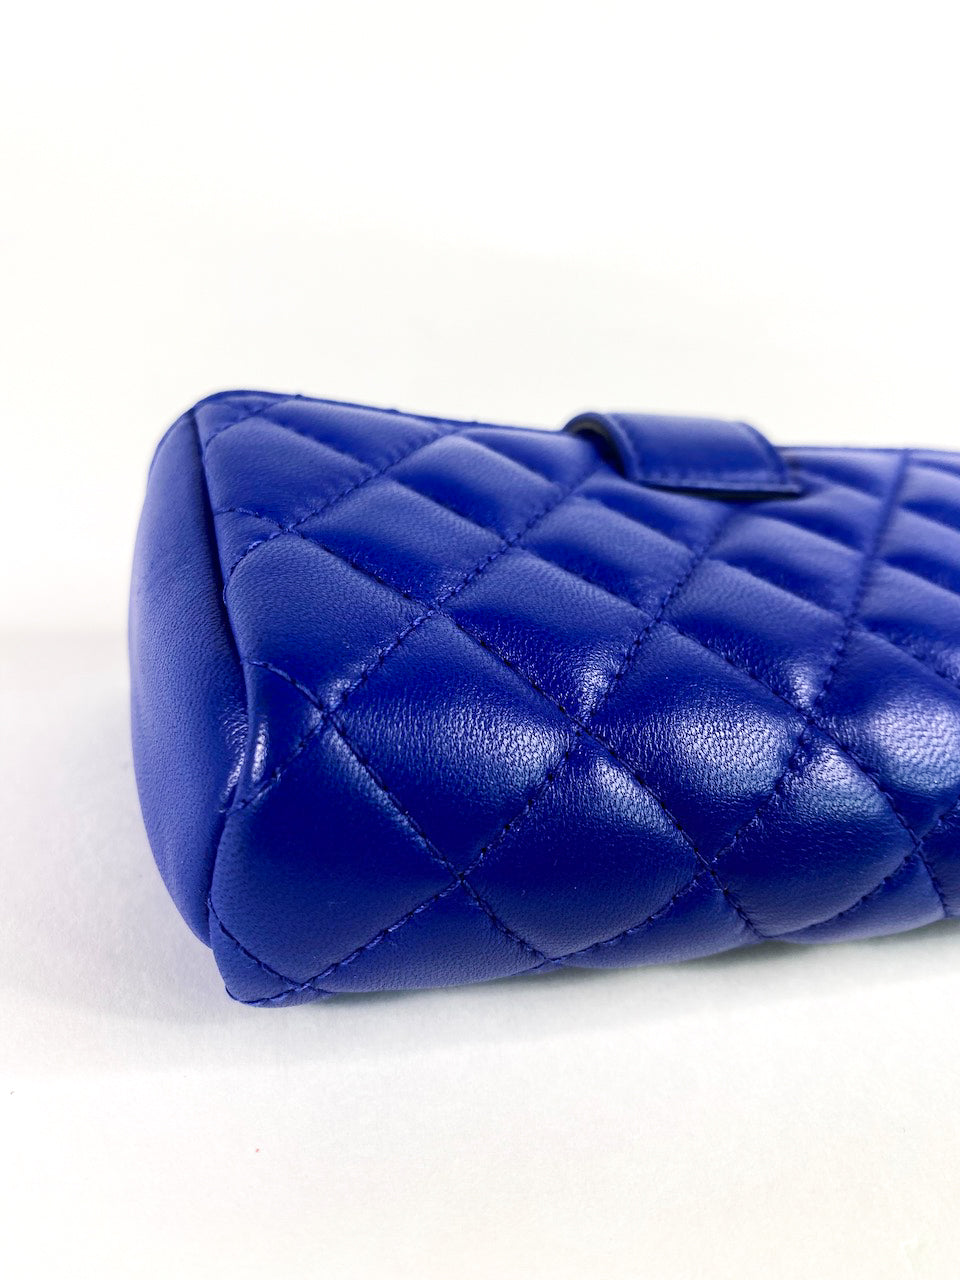 Chanel Blue Lambskin Leather Phone Holder/Pouch - As Seen on Instagram Live 12/07/20 - Siopaella Designer Exchange